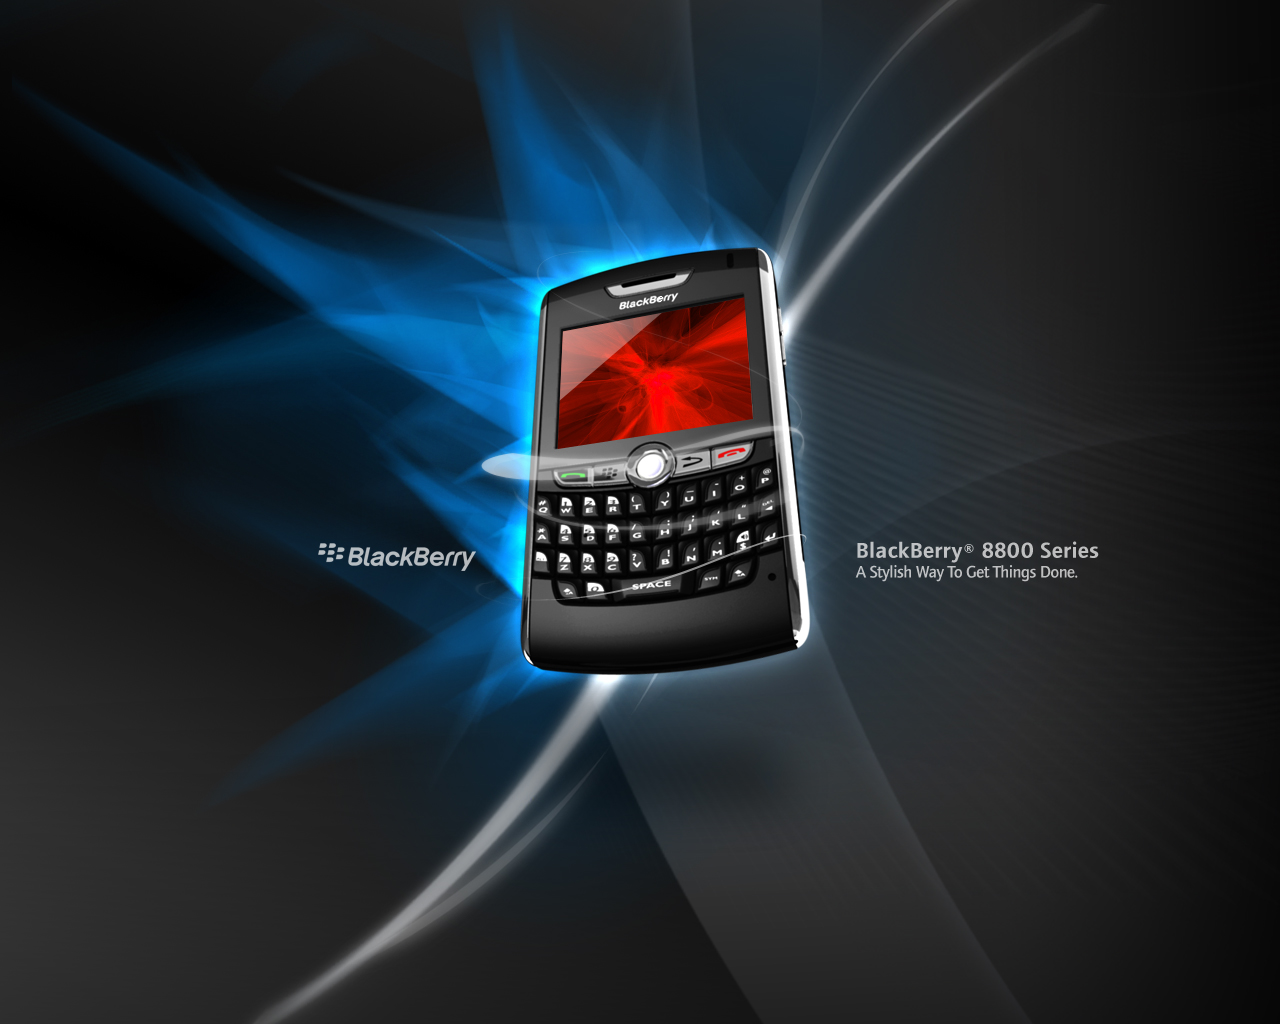 Trololo blogg hd wallpapers blackberry curve 8520 voltagebd Choice Image